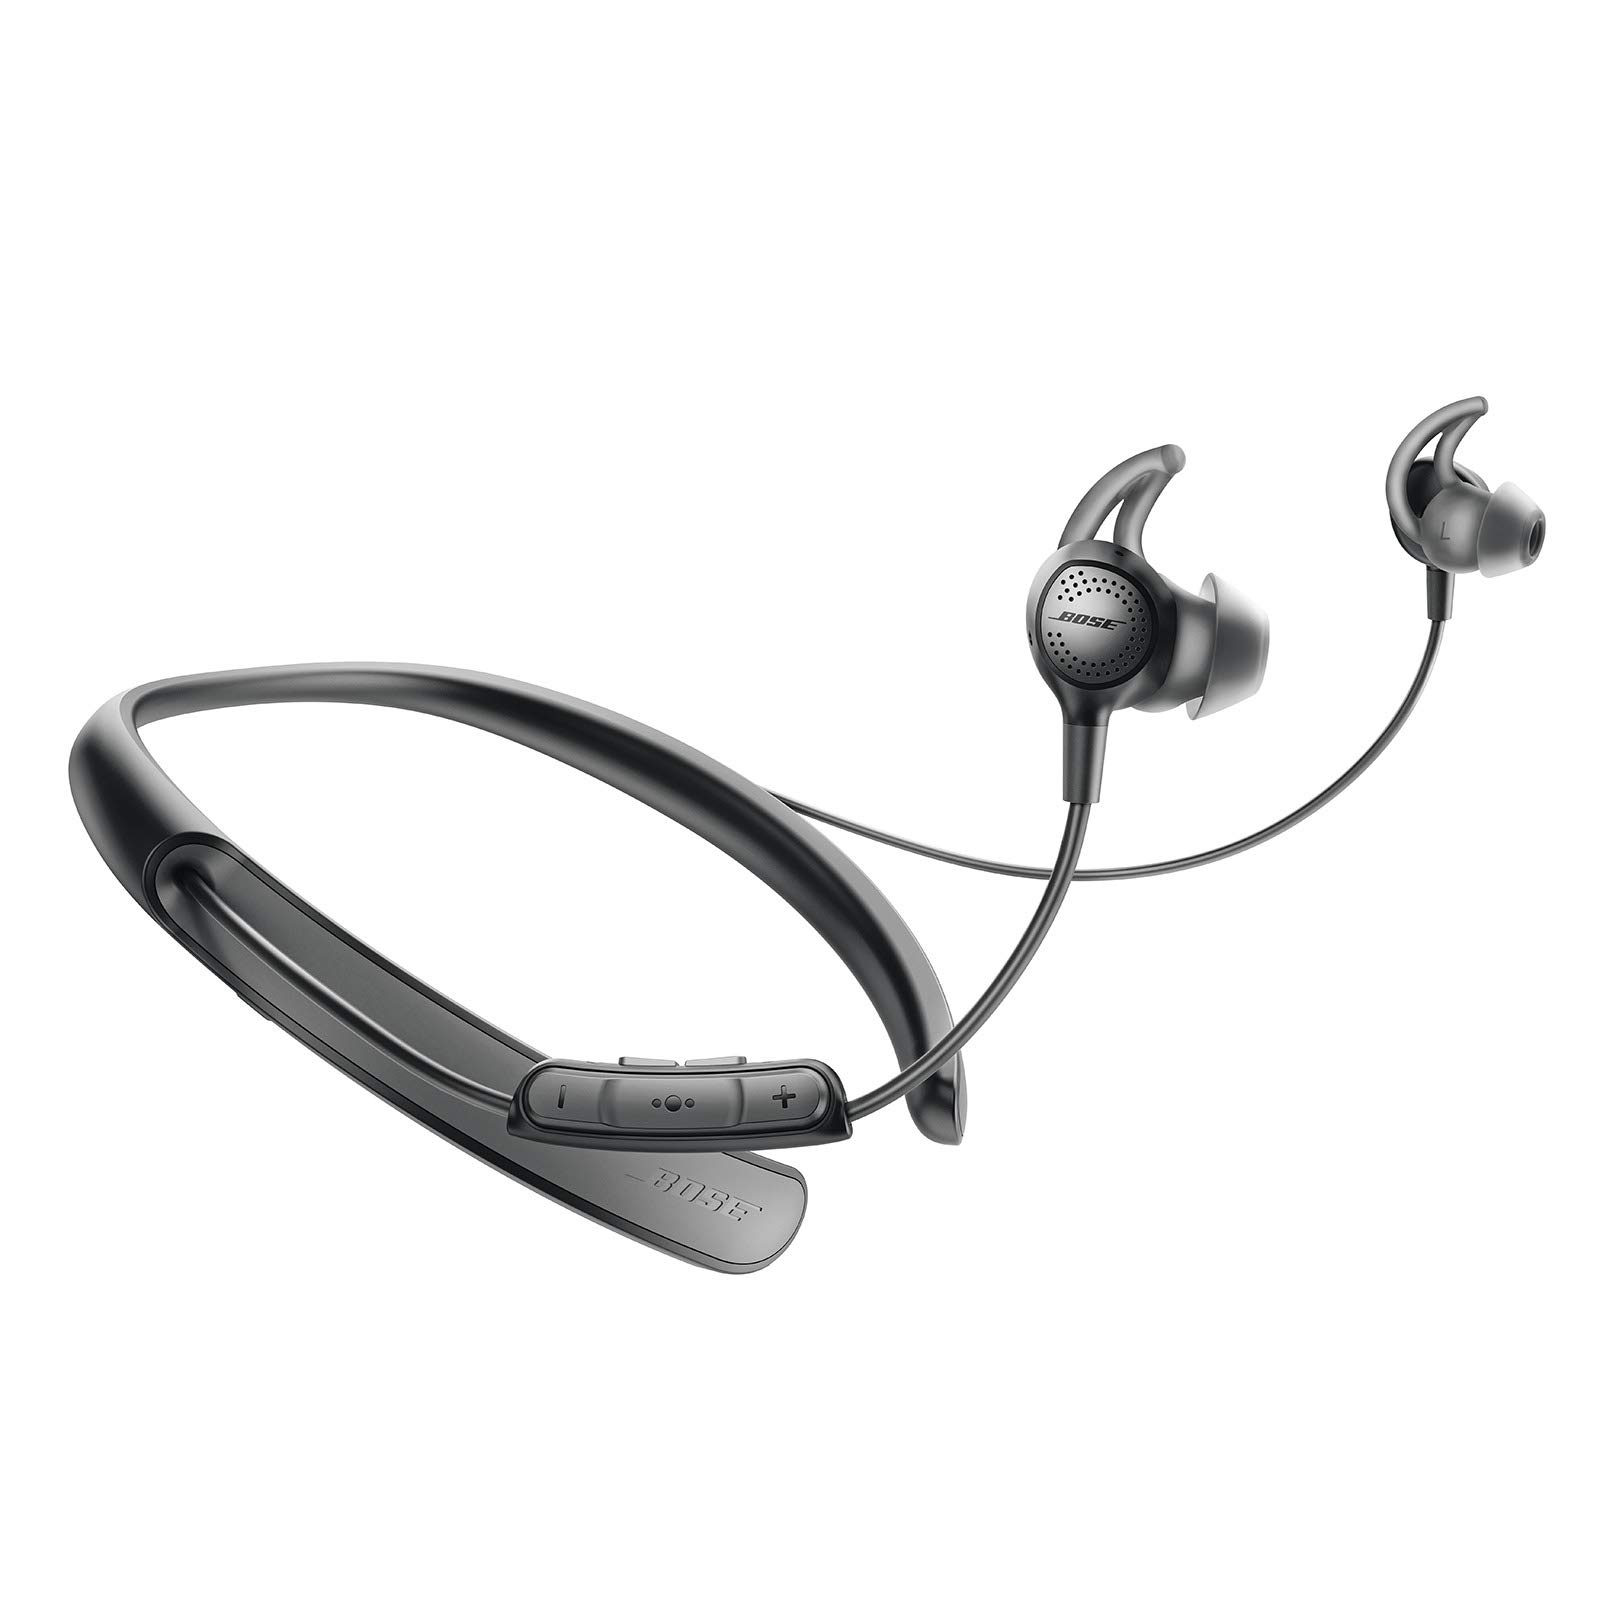 Bose Quietcontrol 30 Wireless Headphones, Noise Cancelling - Black by Bose